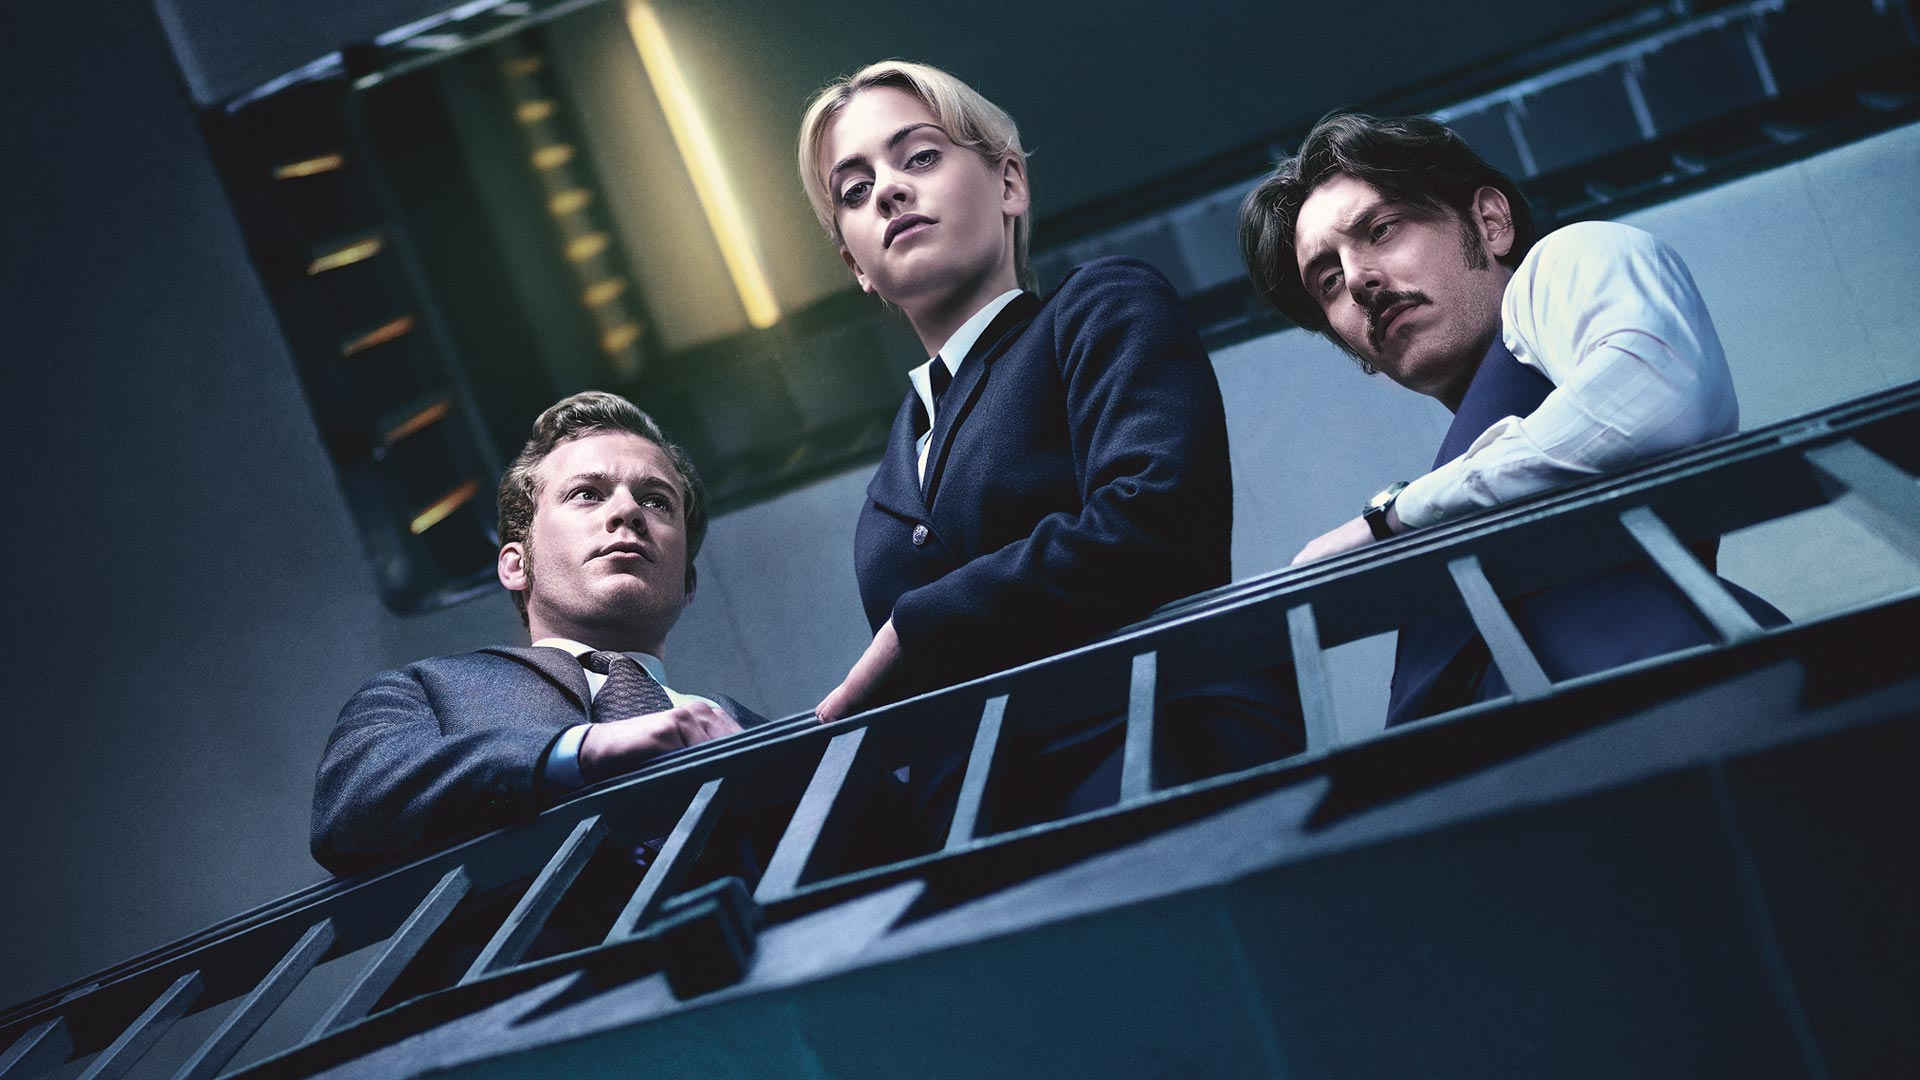 Shown from left to right: Sam Reid as DI Bradfield, Stefanie Martini as Jane Tennison and Blake Harrison as DS Gibbs